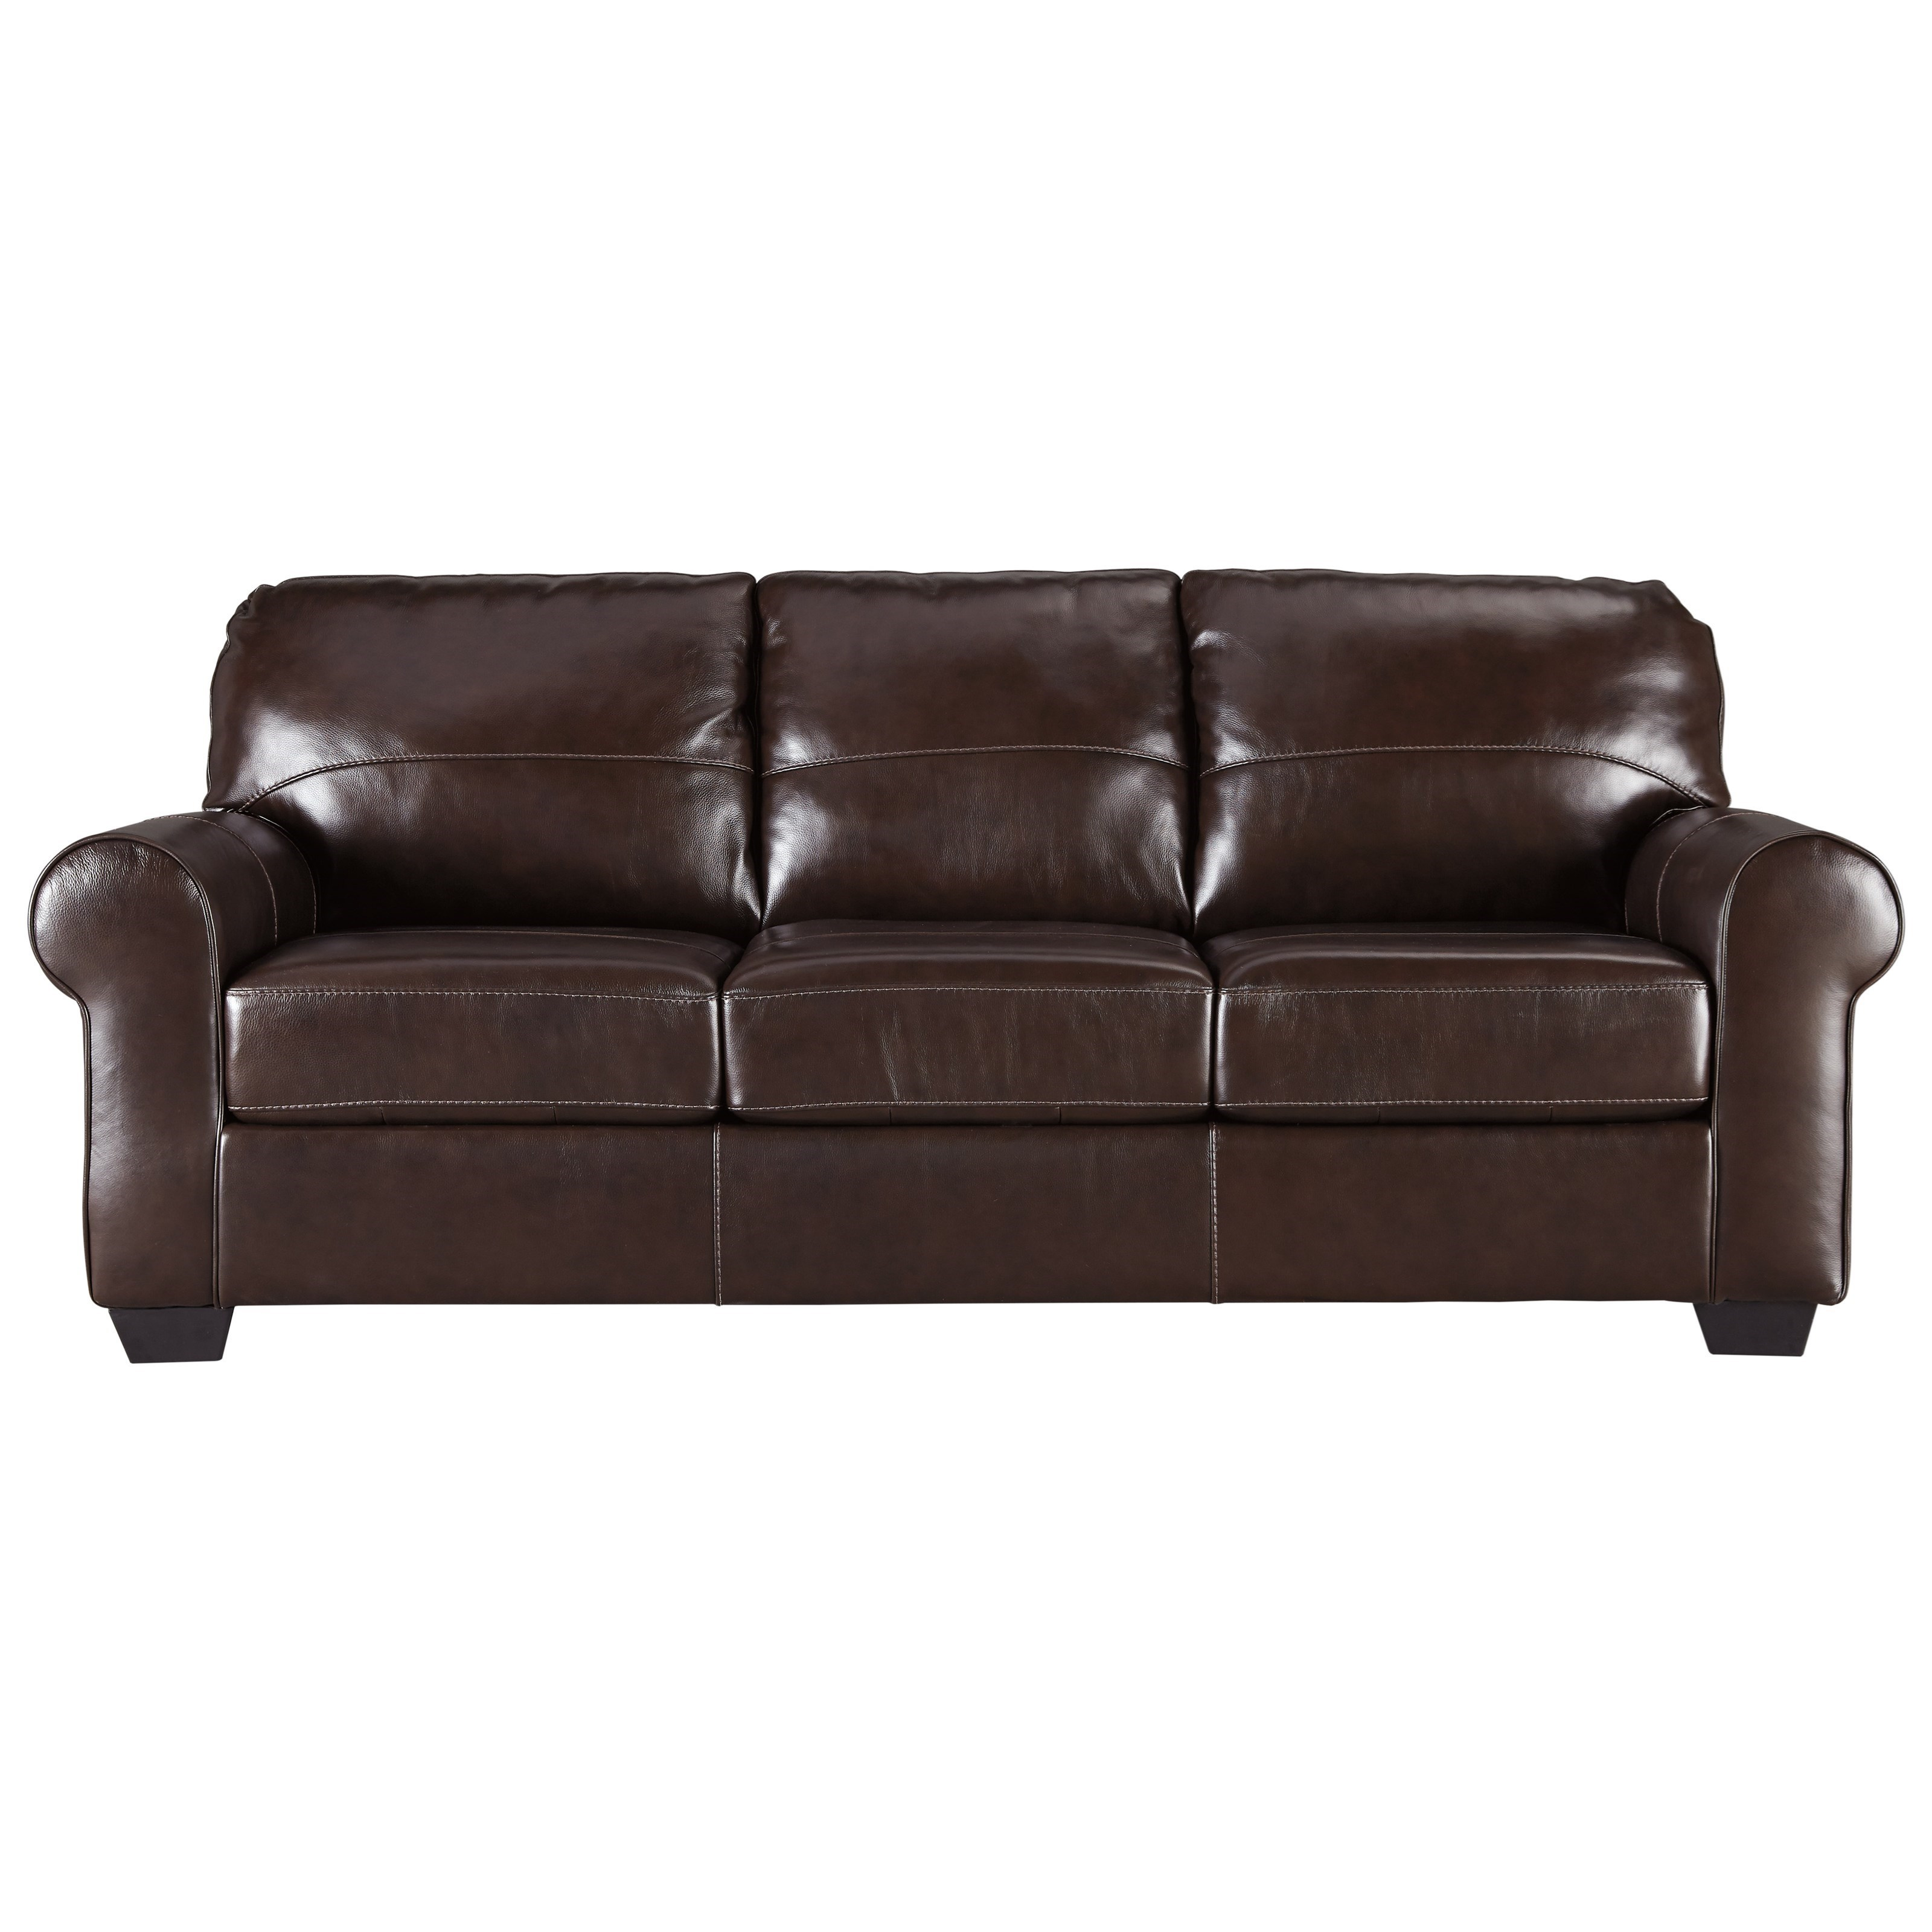 Signature Design By Ashley Canterelli 9800238 Leather Match Sofa With Rolled Arms Del Sol